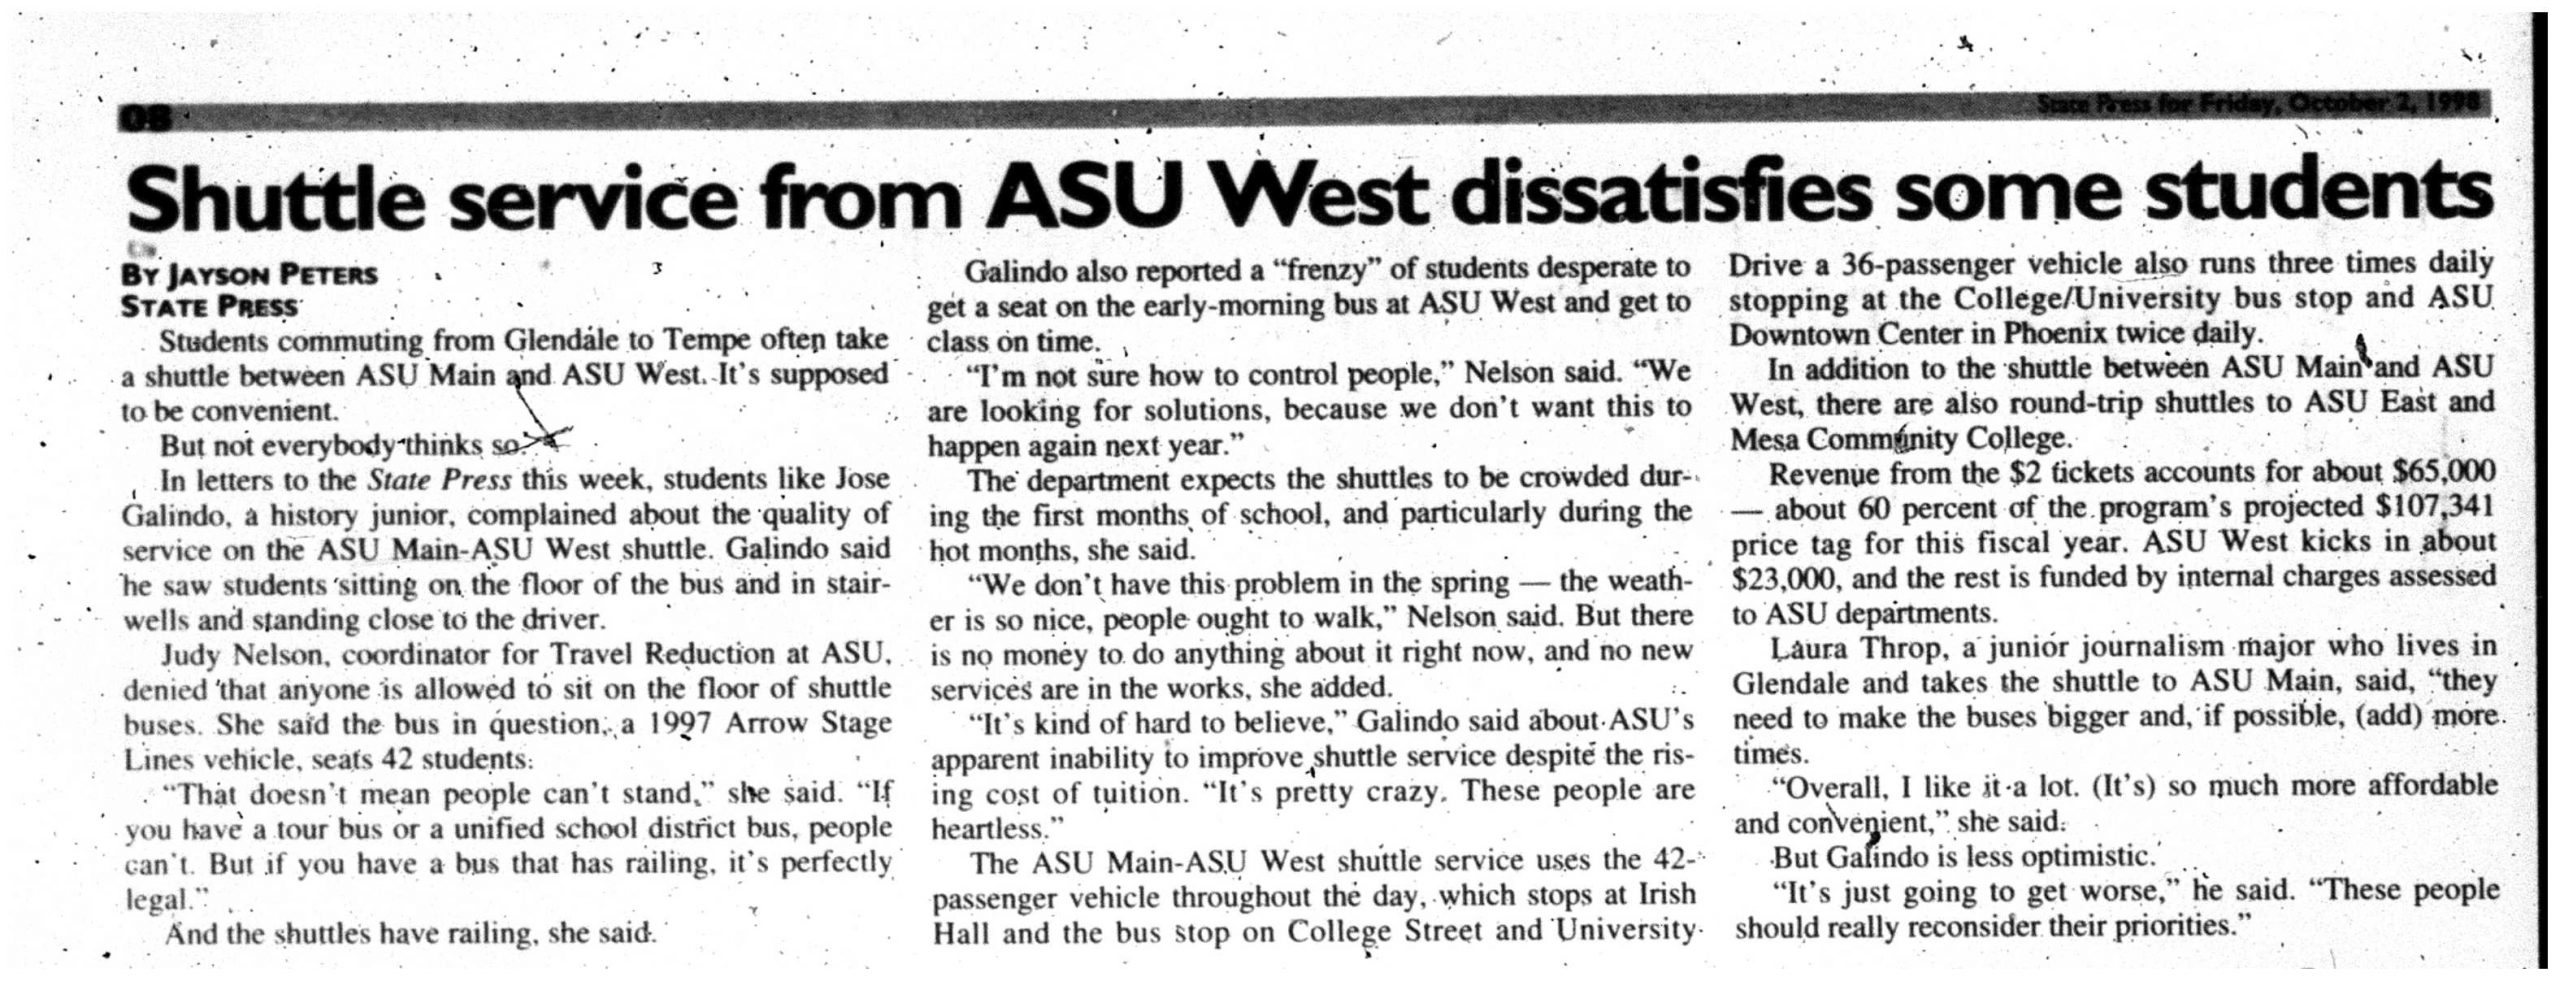 Shuttle service from ASU West dissatisfies some students